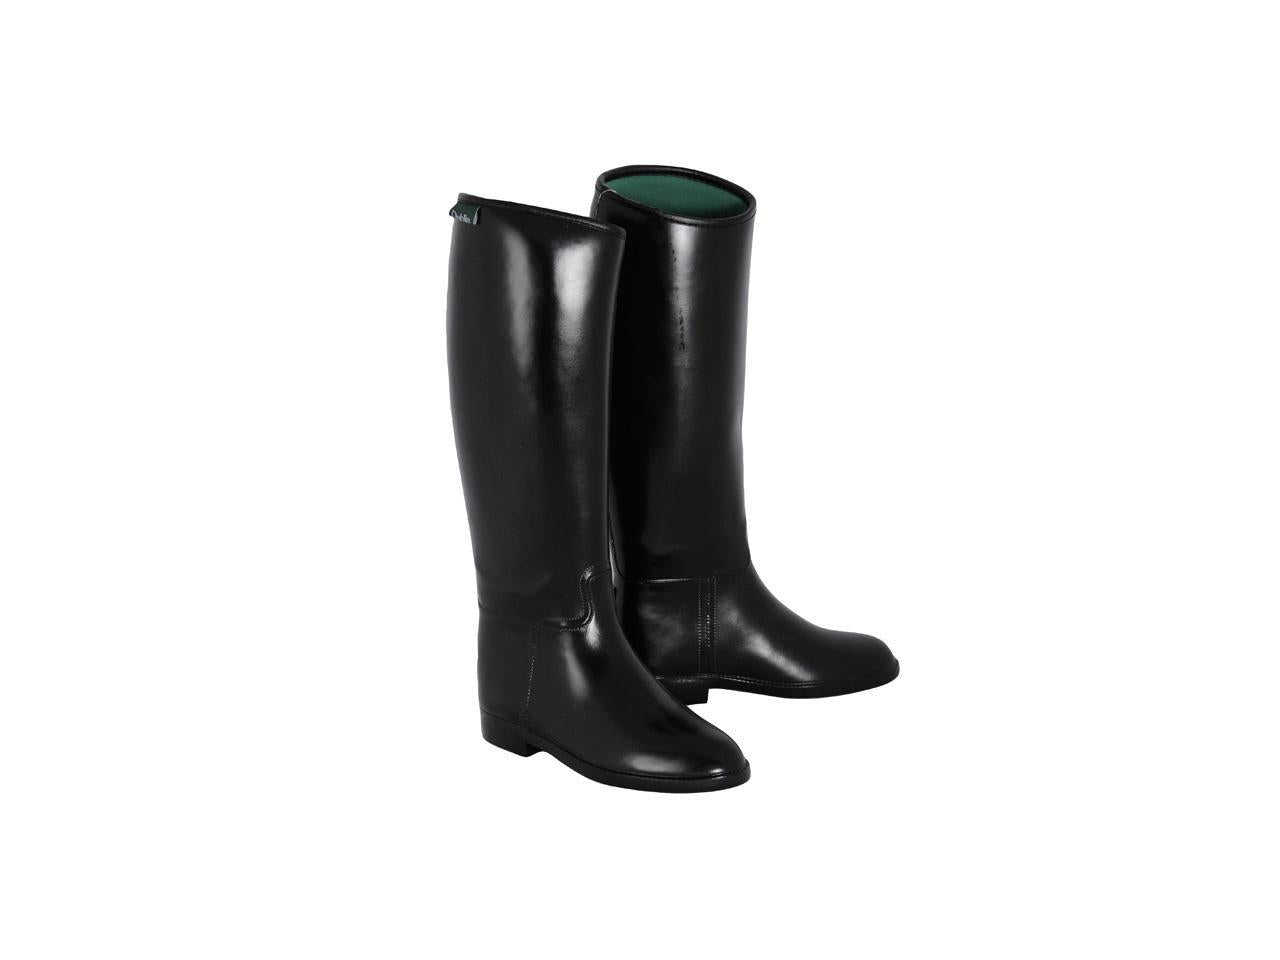 Dublin Universal Tall Boots Ladies